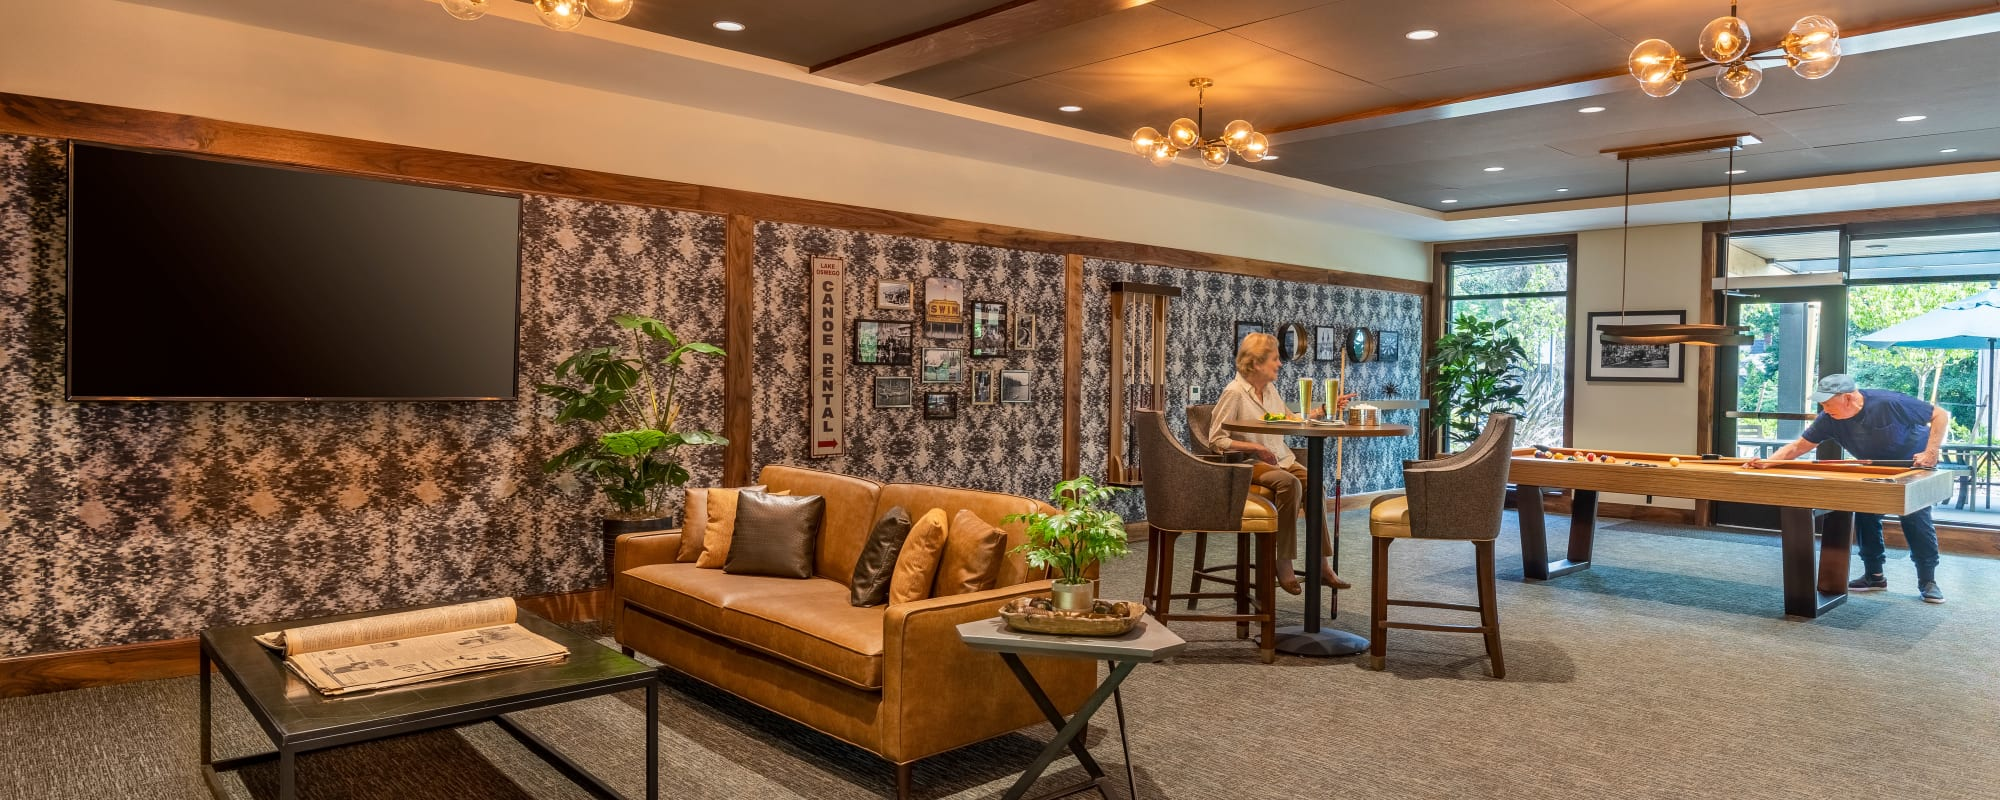 Assisted living at The Springs at Lake Oswego in Lake Oswego, Oregon